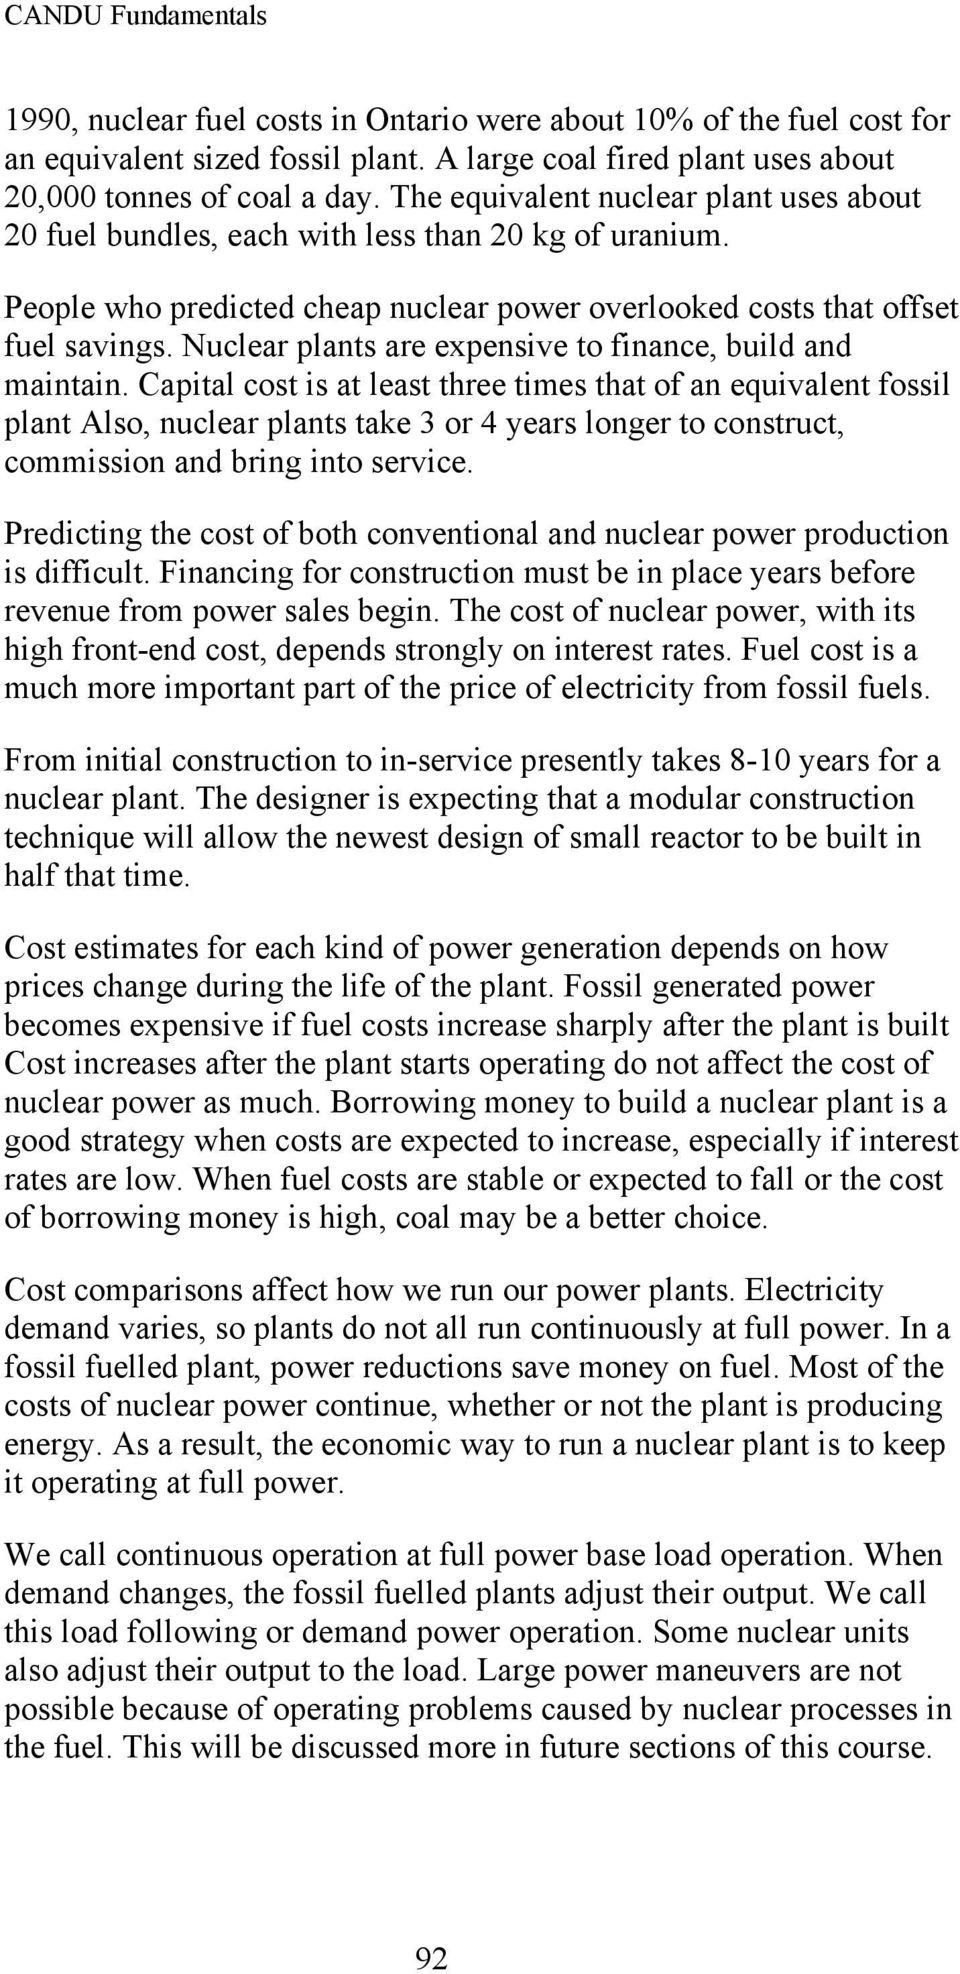 Nuclear plants are expensive to finance, build and maintain.